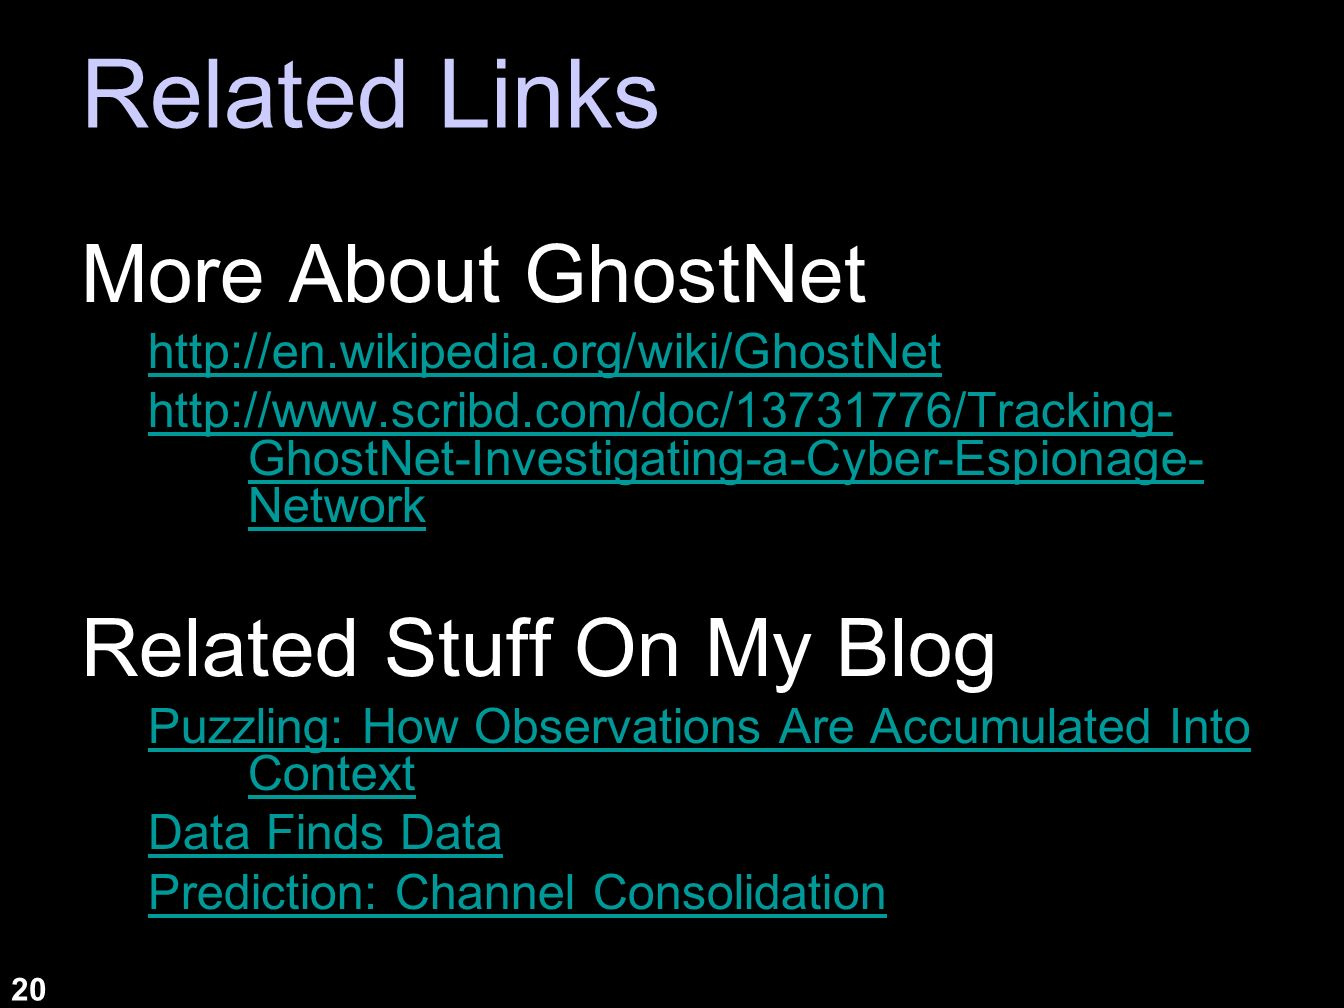 20 Related Links More About GhostNet http://en.wikipedia.org/wiki/GhostNet http://www.scribd.com/doc/13731776/Tracking- GhostNet-Investigating-a-Cyber